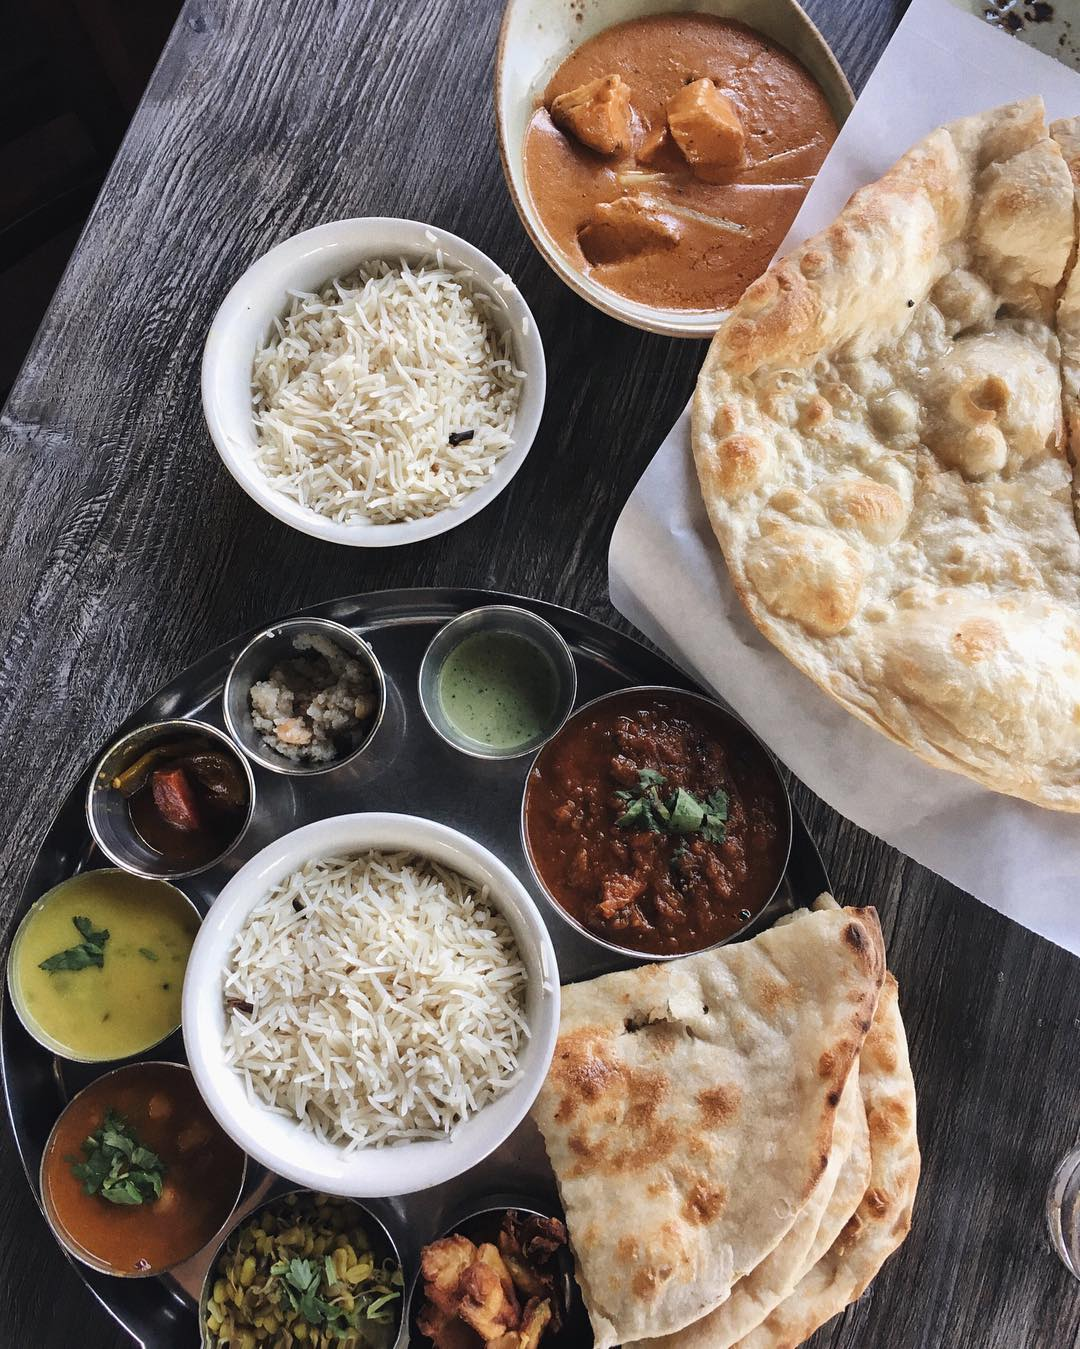 Just_what_I_needed_to_close_out_the_week_Thali_power_lunch_at_New_India._I_m_a_changed_man_______thali__atx__tgif__codybratford.jpg